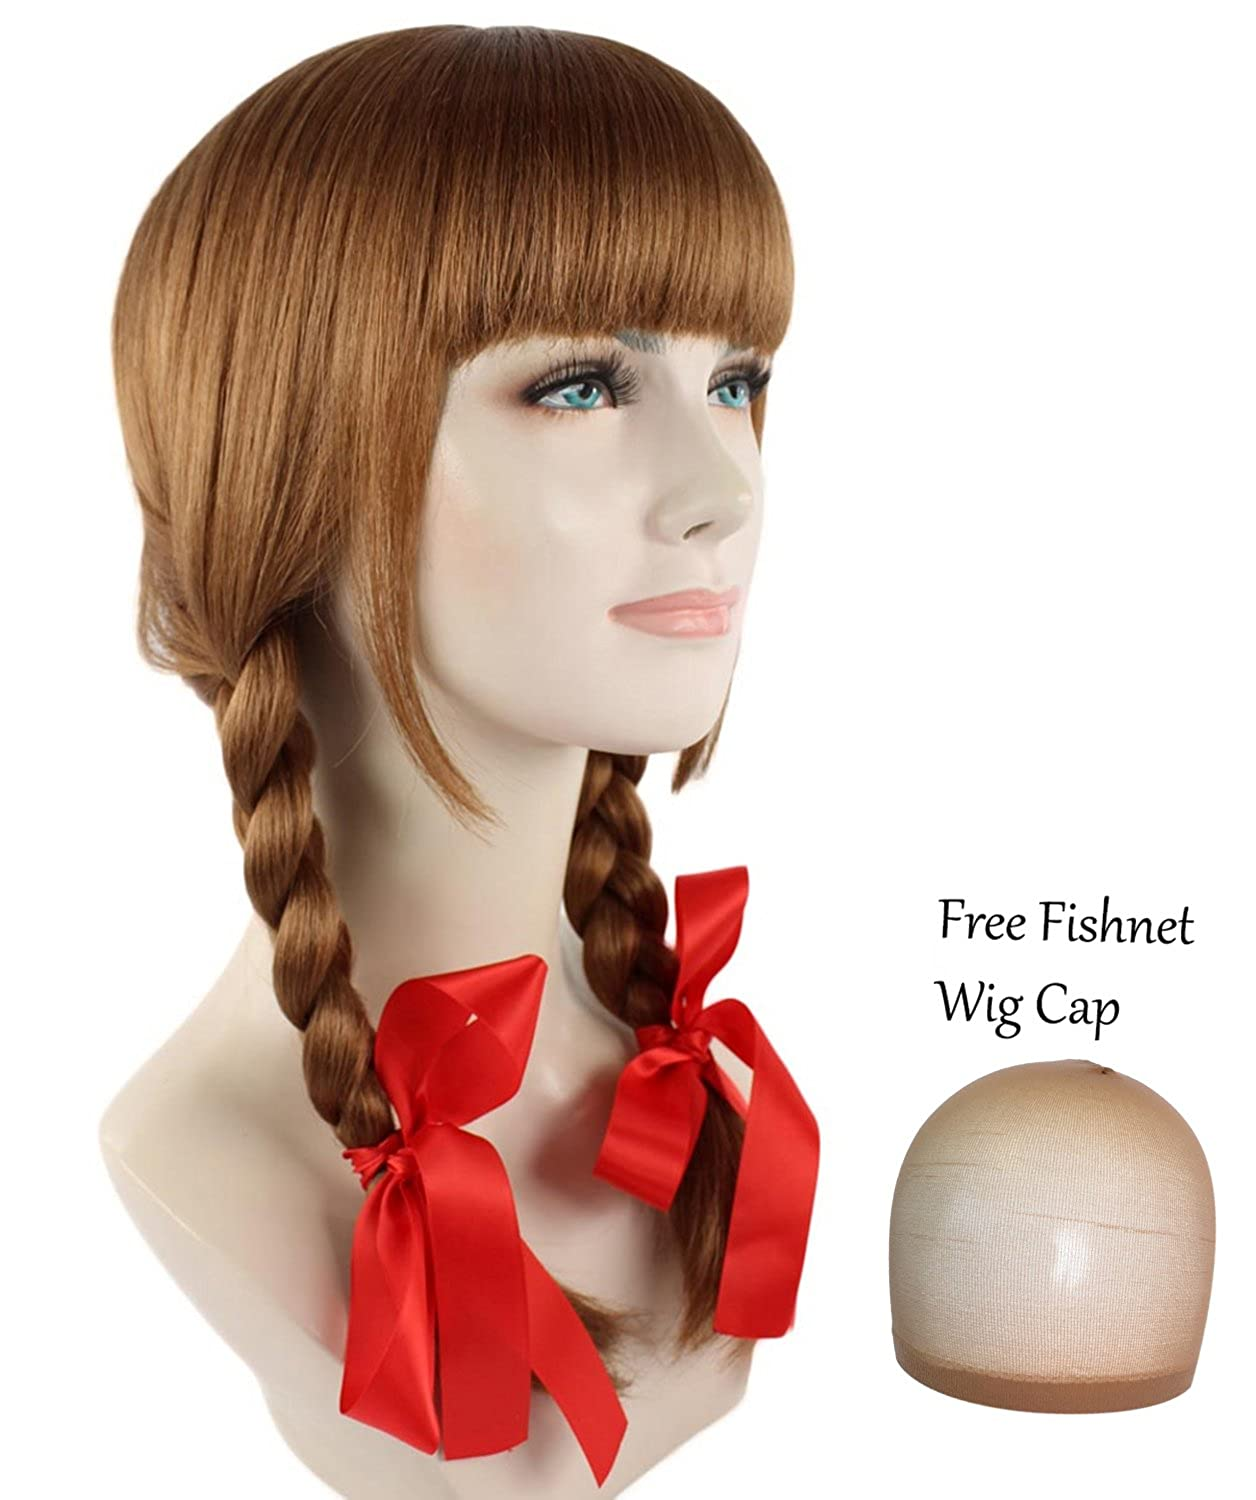 Cece Long Hair Double Braid Wigs with Bangs for Cosplay Costume Party Annabelle